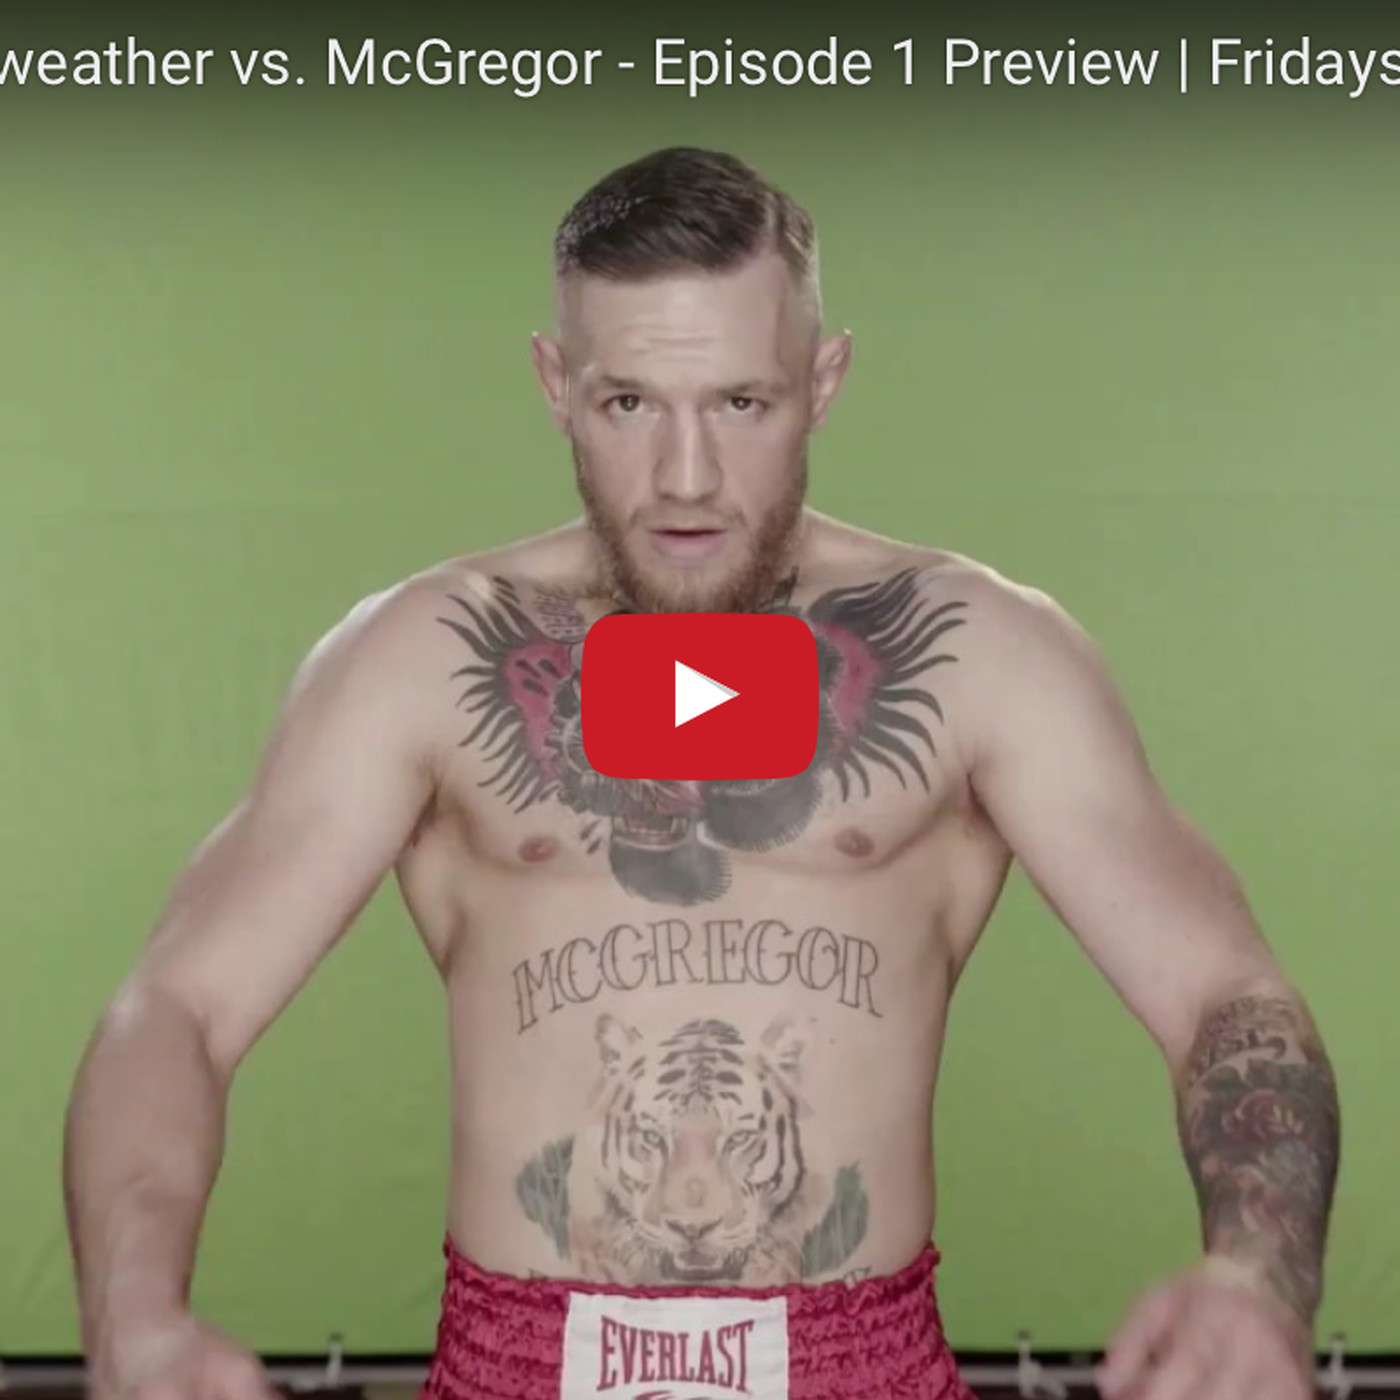 Hedendaags Mayweather-McGregor 'All Access' Ep. 1 video preview - MMAmania.com BF-94